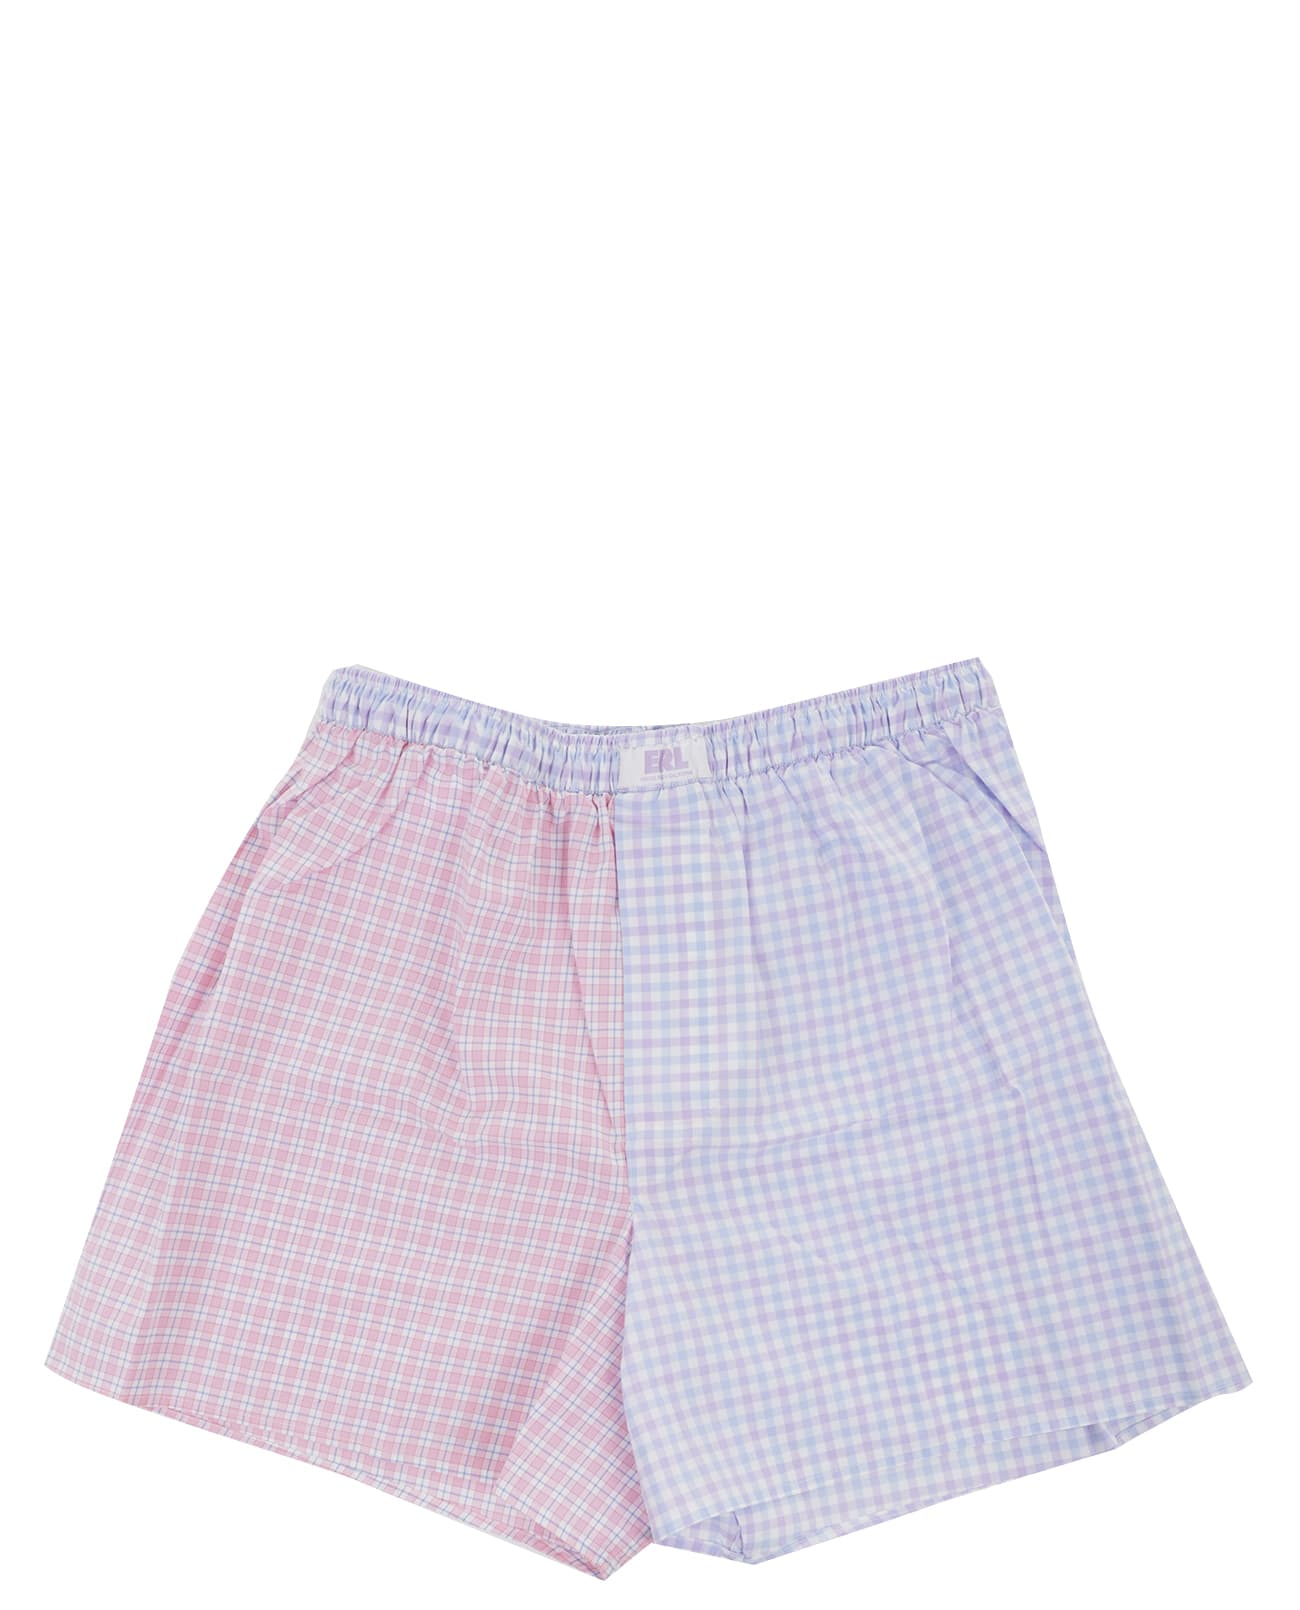 Erl ERL SPLICE BOXER SHORTS